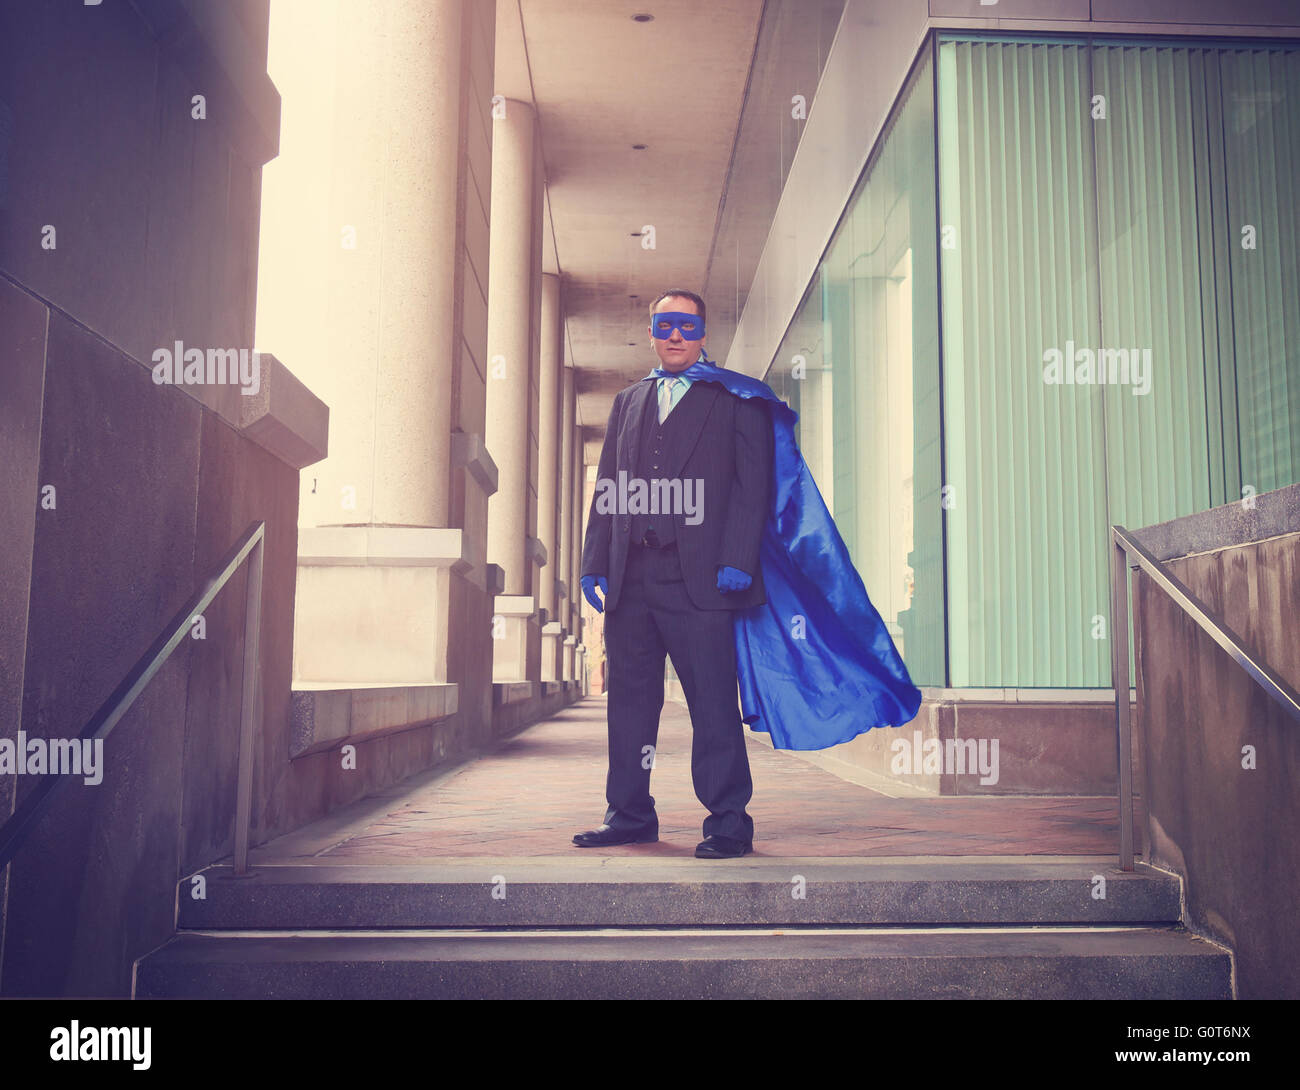 A business man is wearing a super hero blue costume with a suit in a city for a career success or innovation concept. - Stock Image